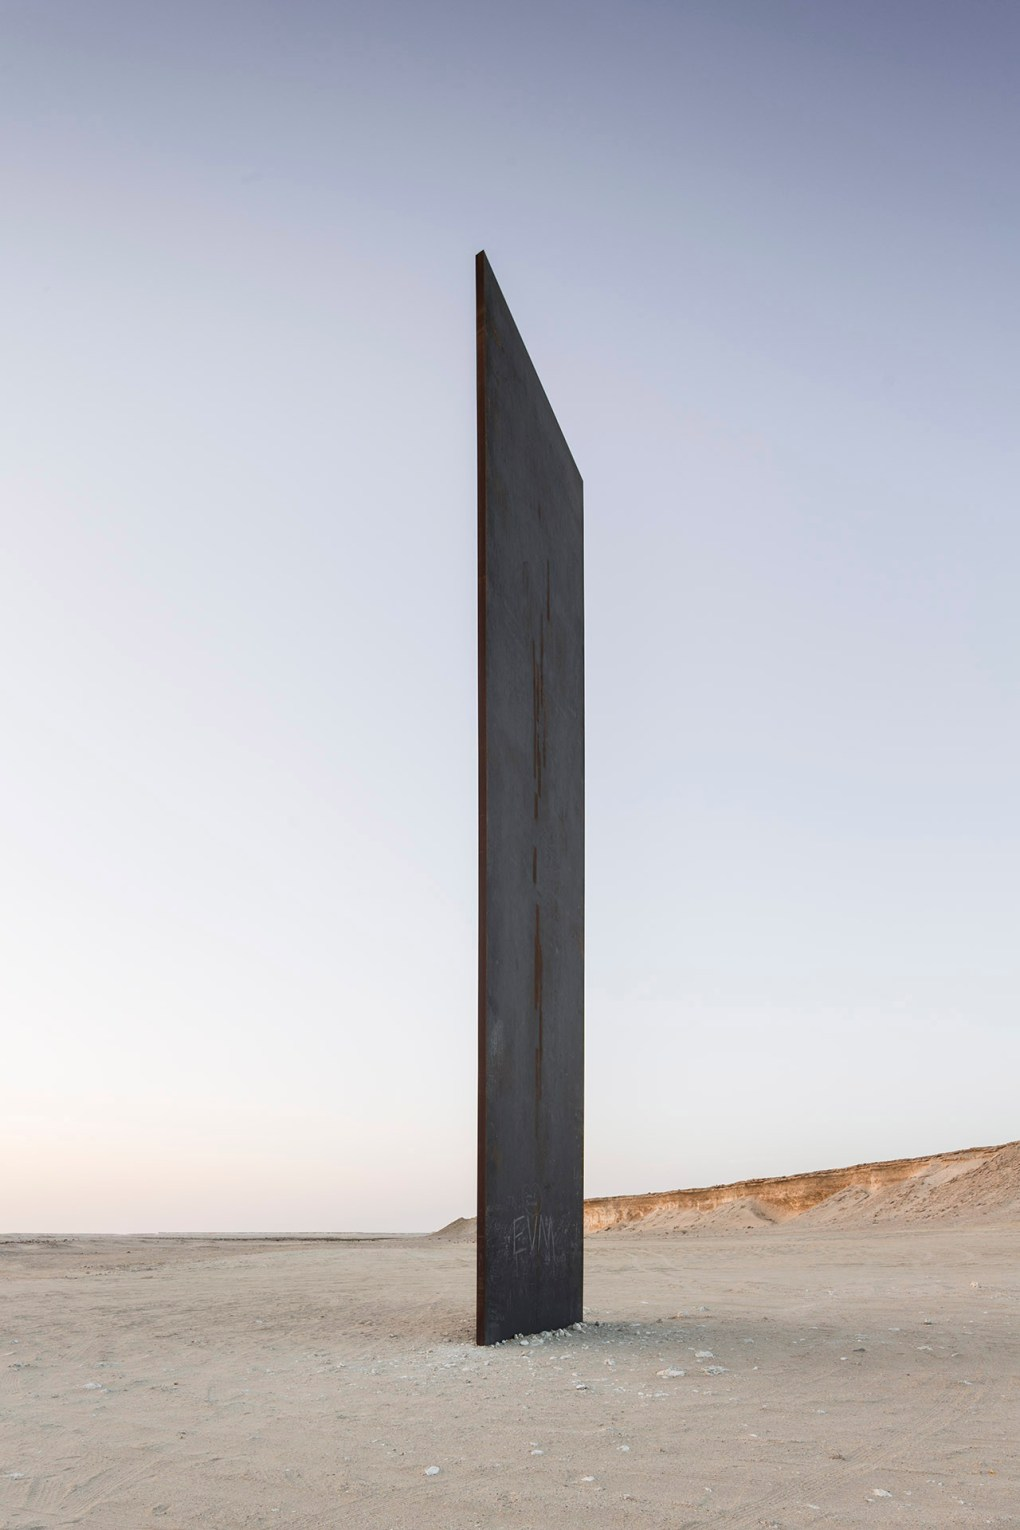 richard_serra_east_west_west_east_qatar_201014_217